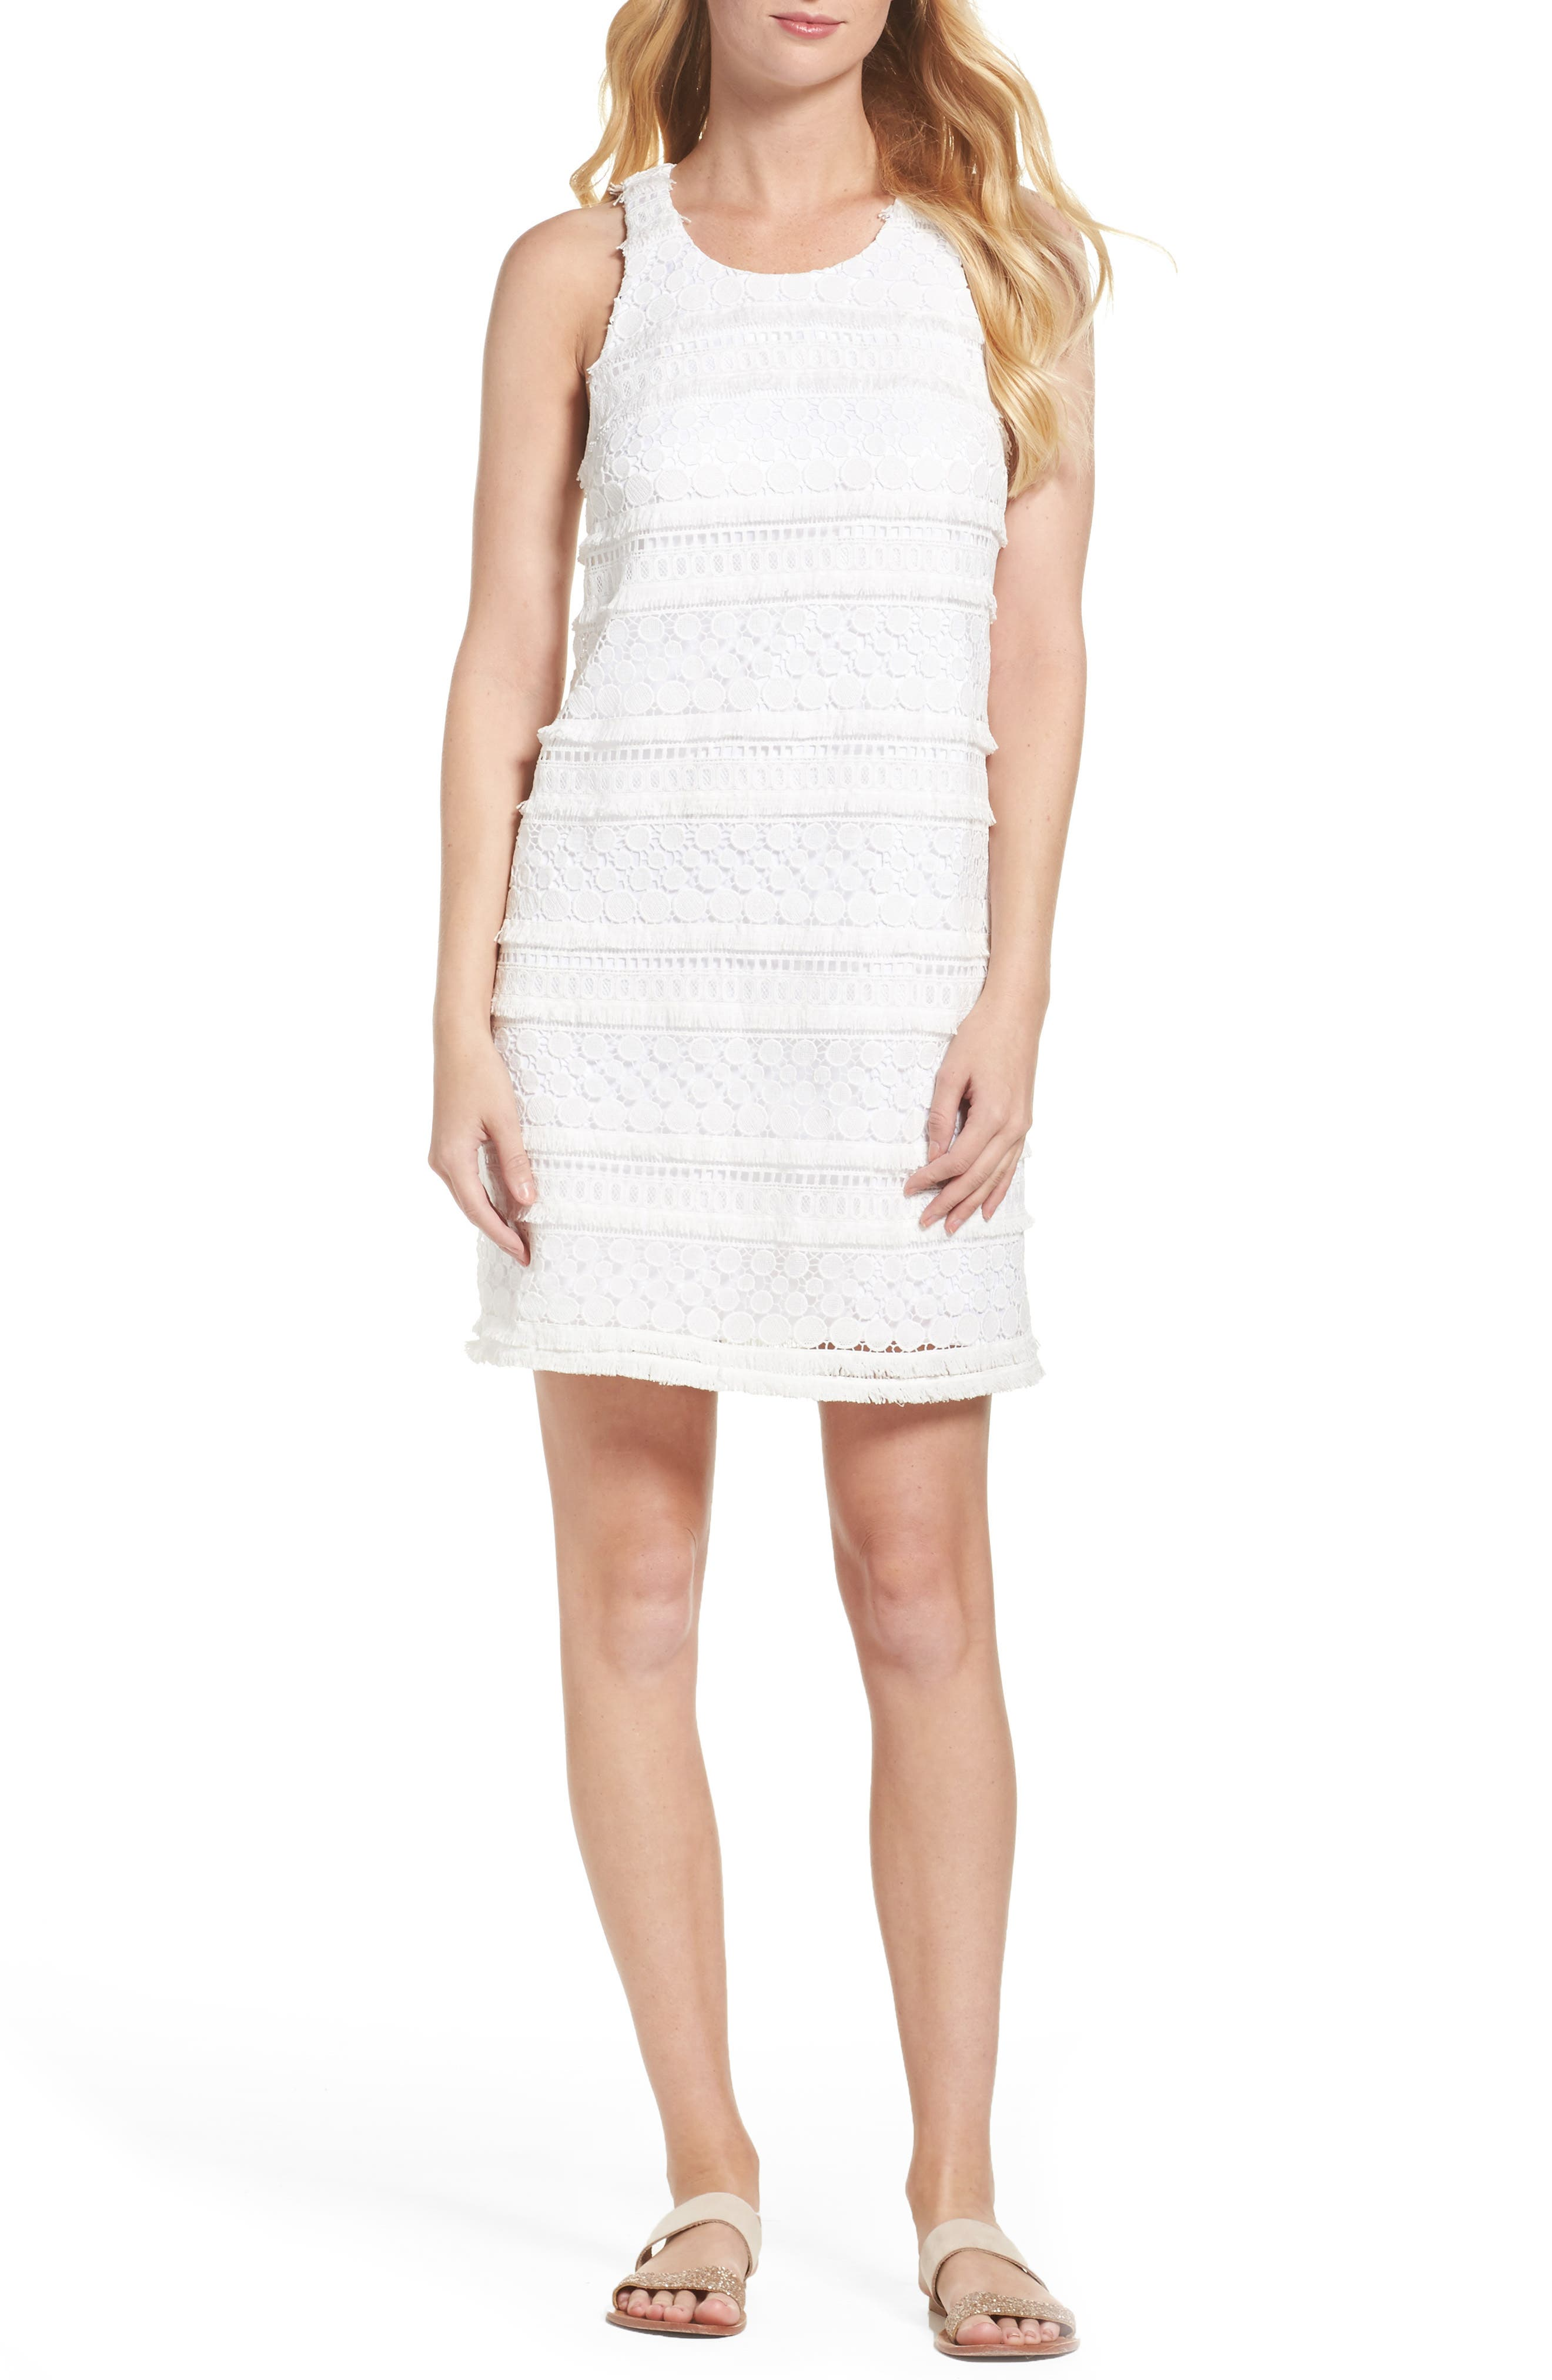 Alternate Image 1 Selected - Lilly Pulitzer® Anette Lace Shift Dress